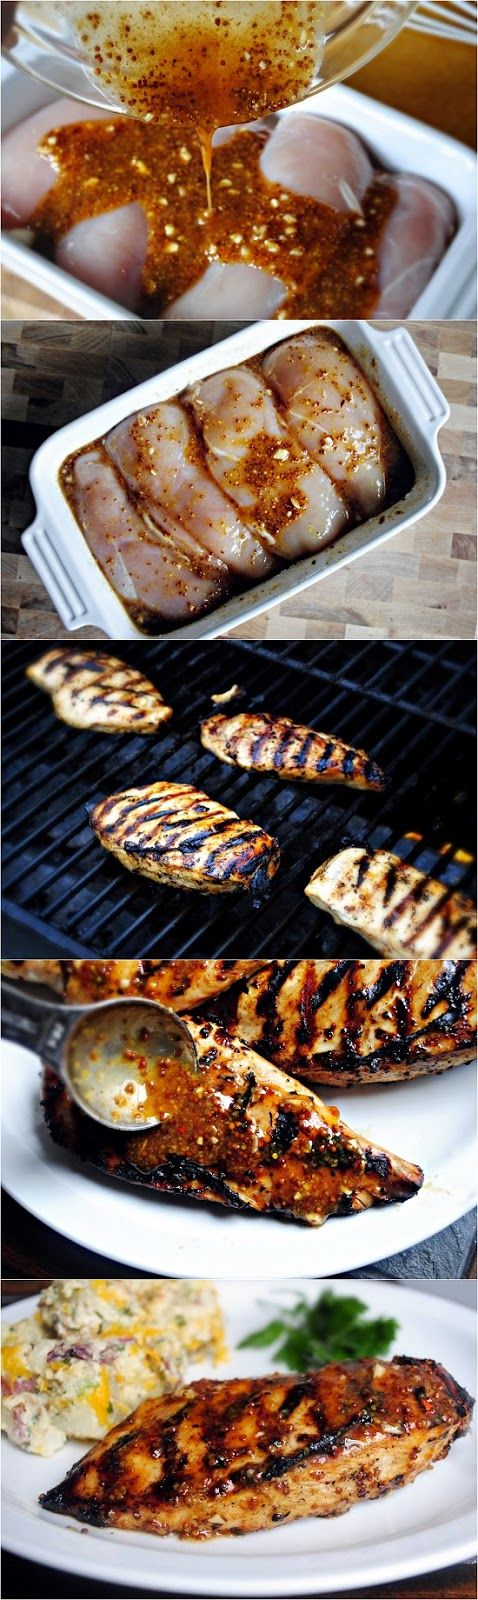 get ready to celebrate dad this year with some tasty Father's day BBQ ideas that you can make this year. Check out over 20 delicious ideas.